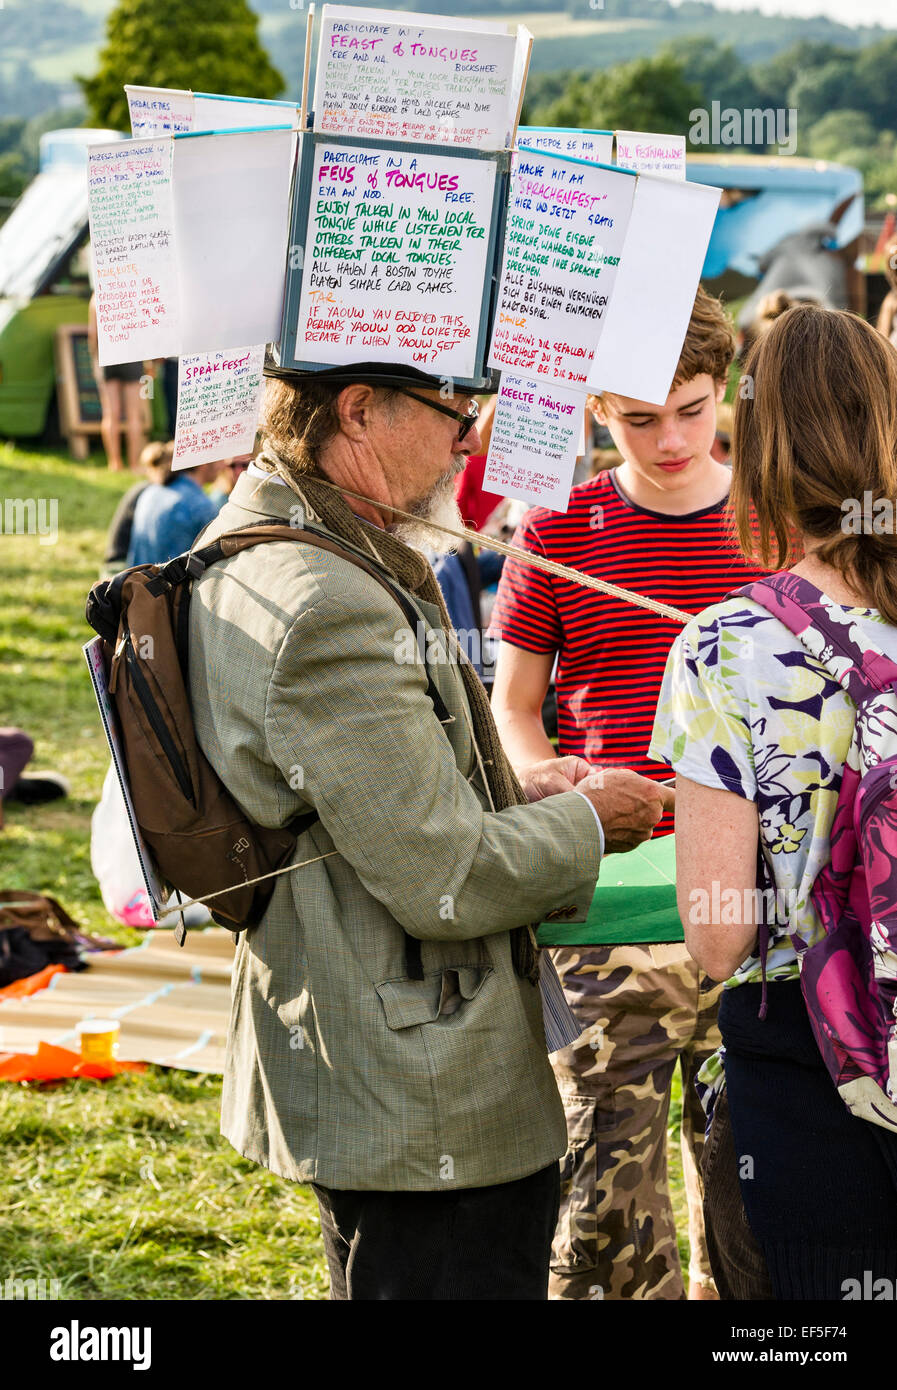 An entertainer at the Sheep Music Festival in Presteigne, Powys, UK - Stock Image